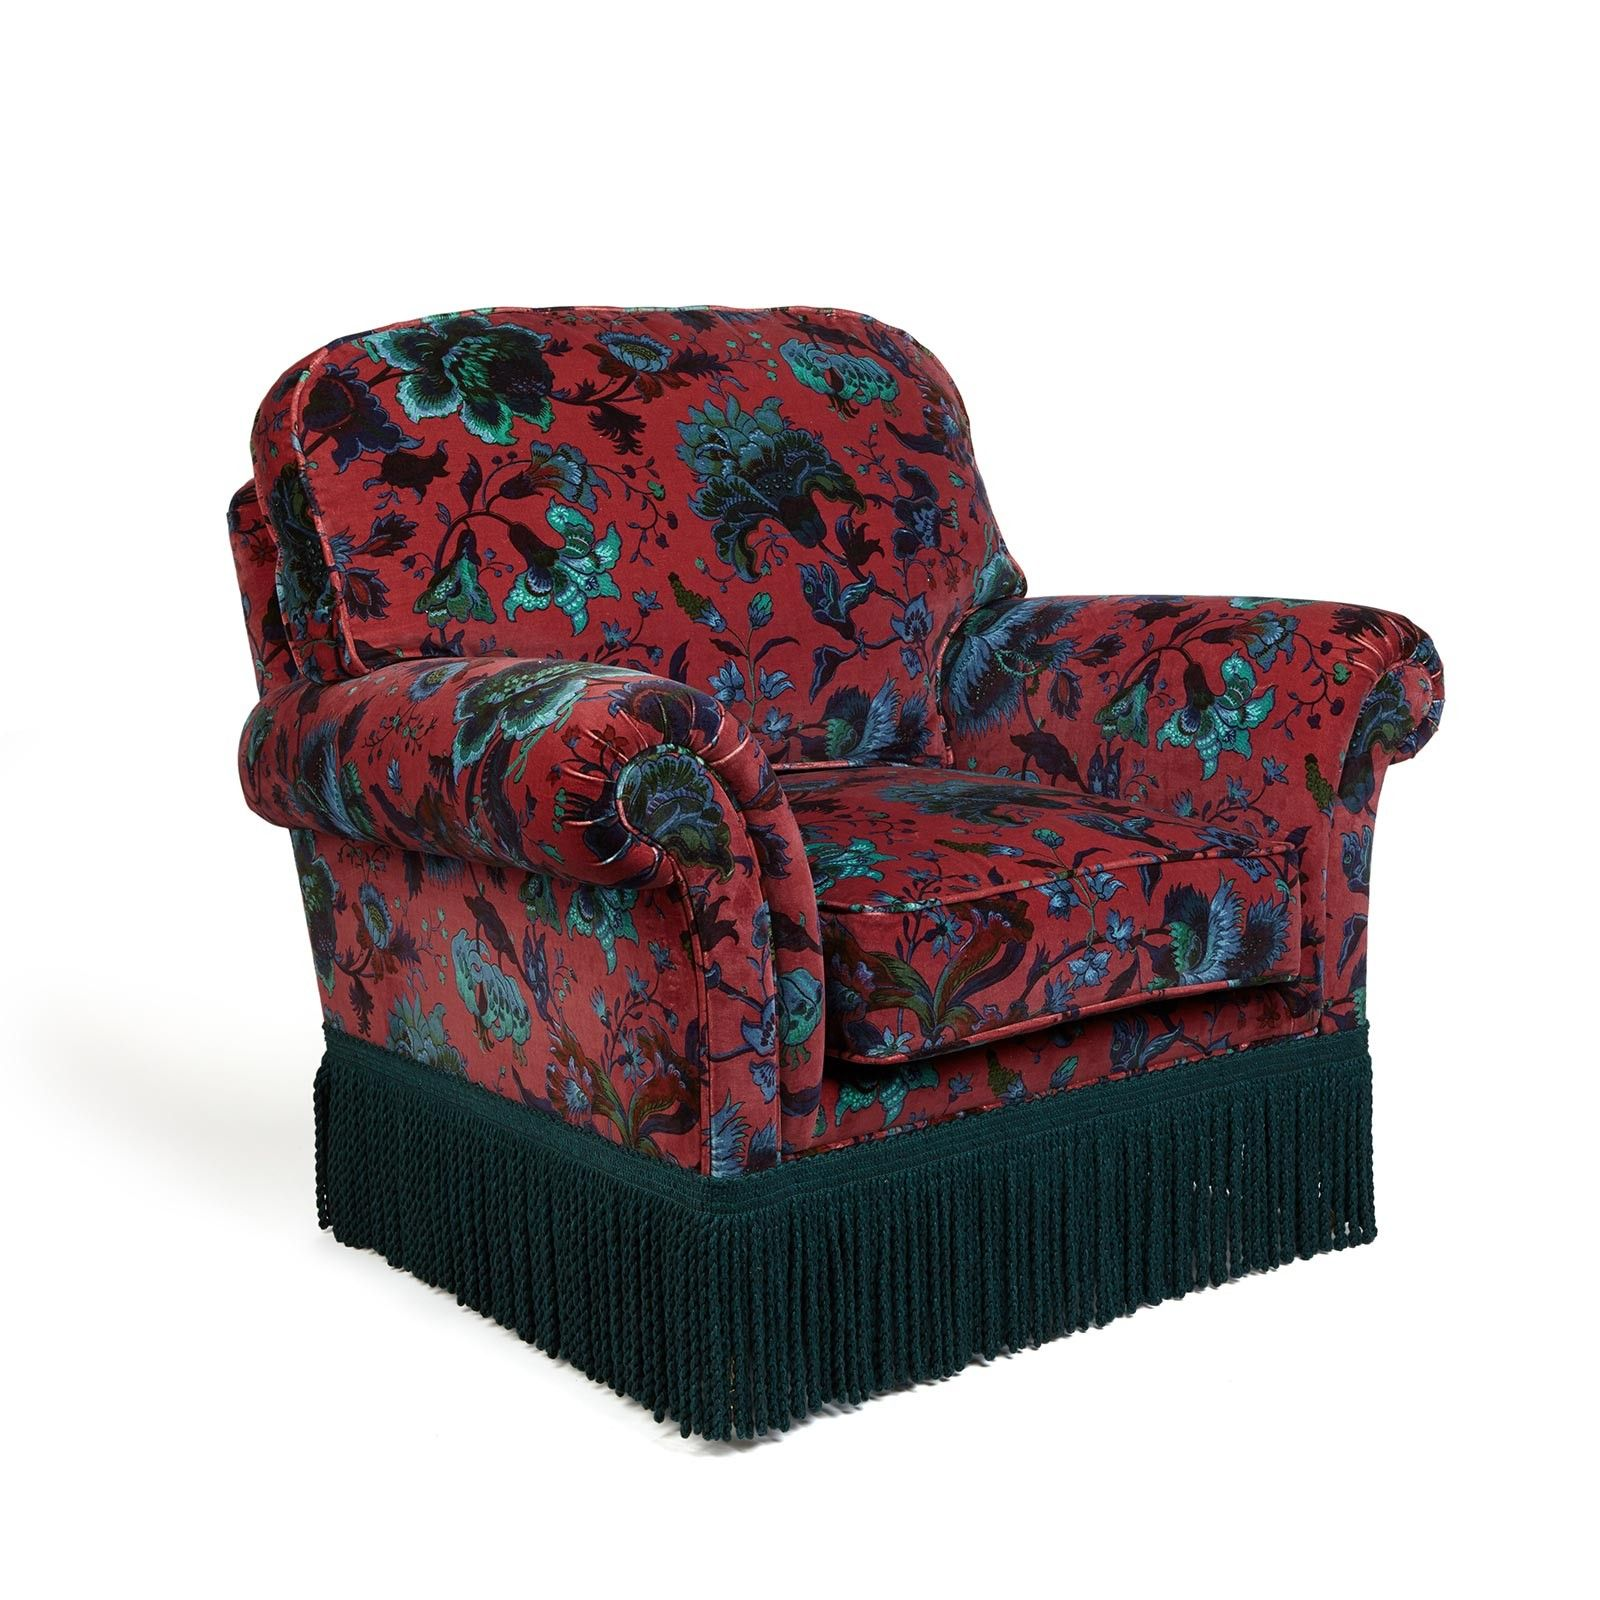 MAJORELLE 'Bartley' Chair ViolaPink Fabric houses